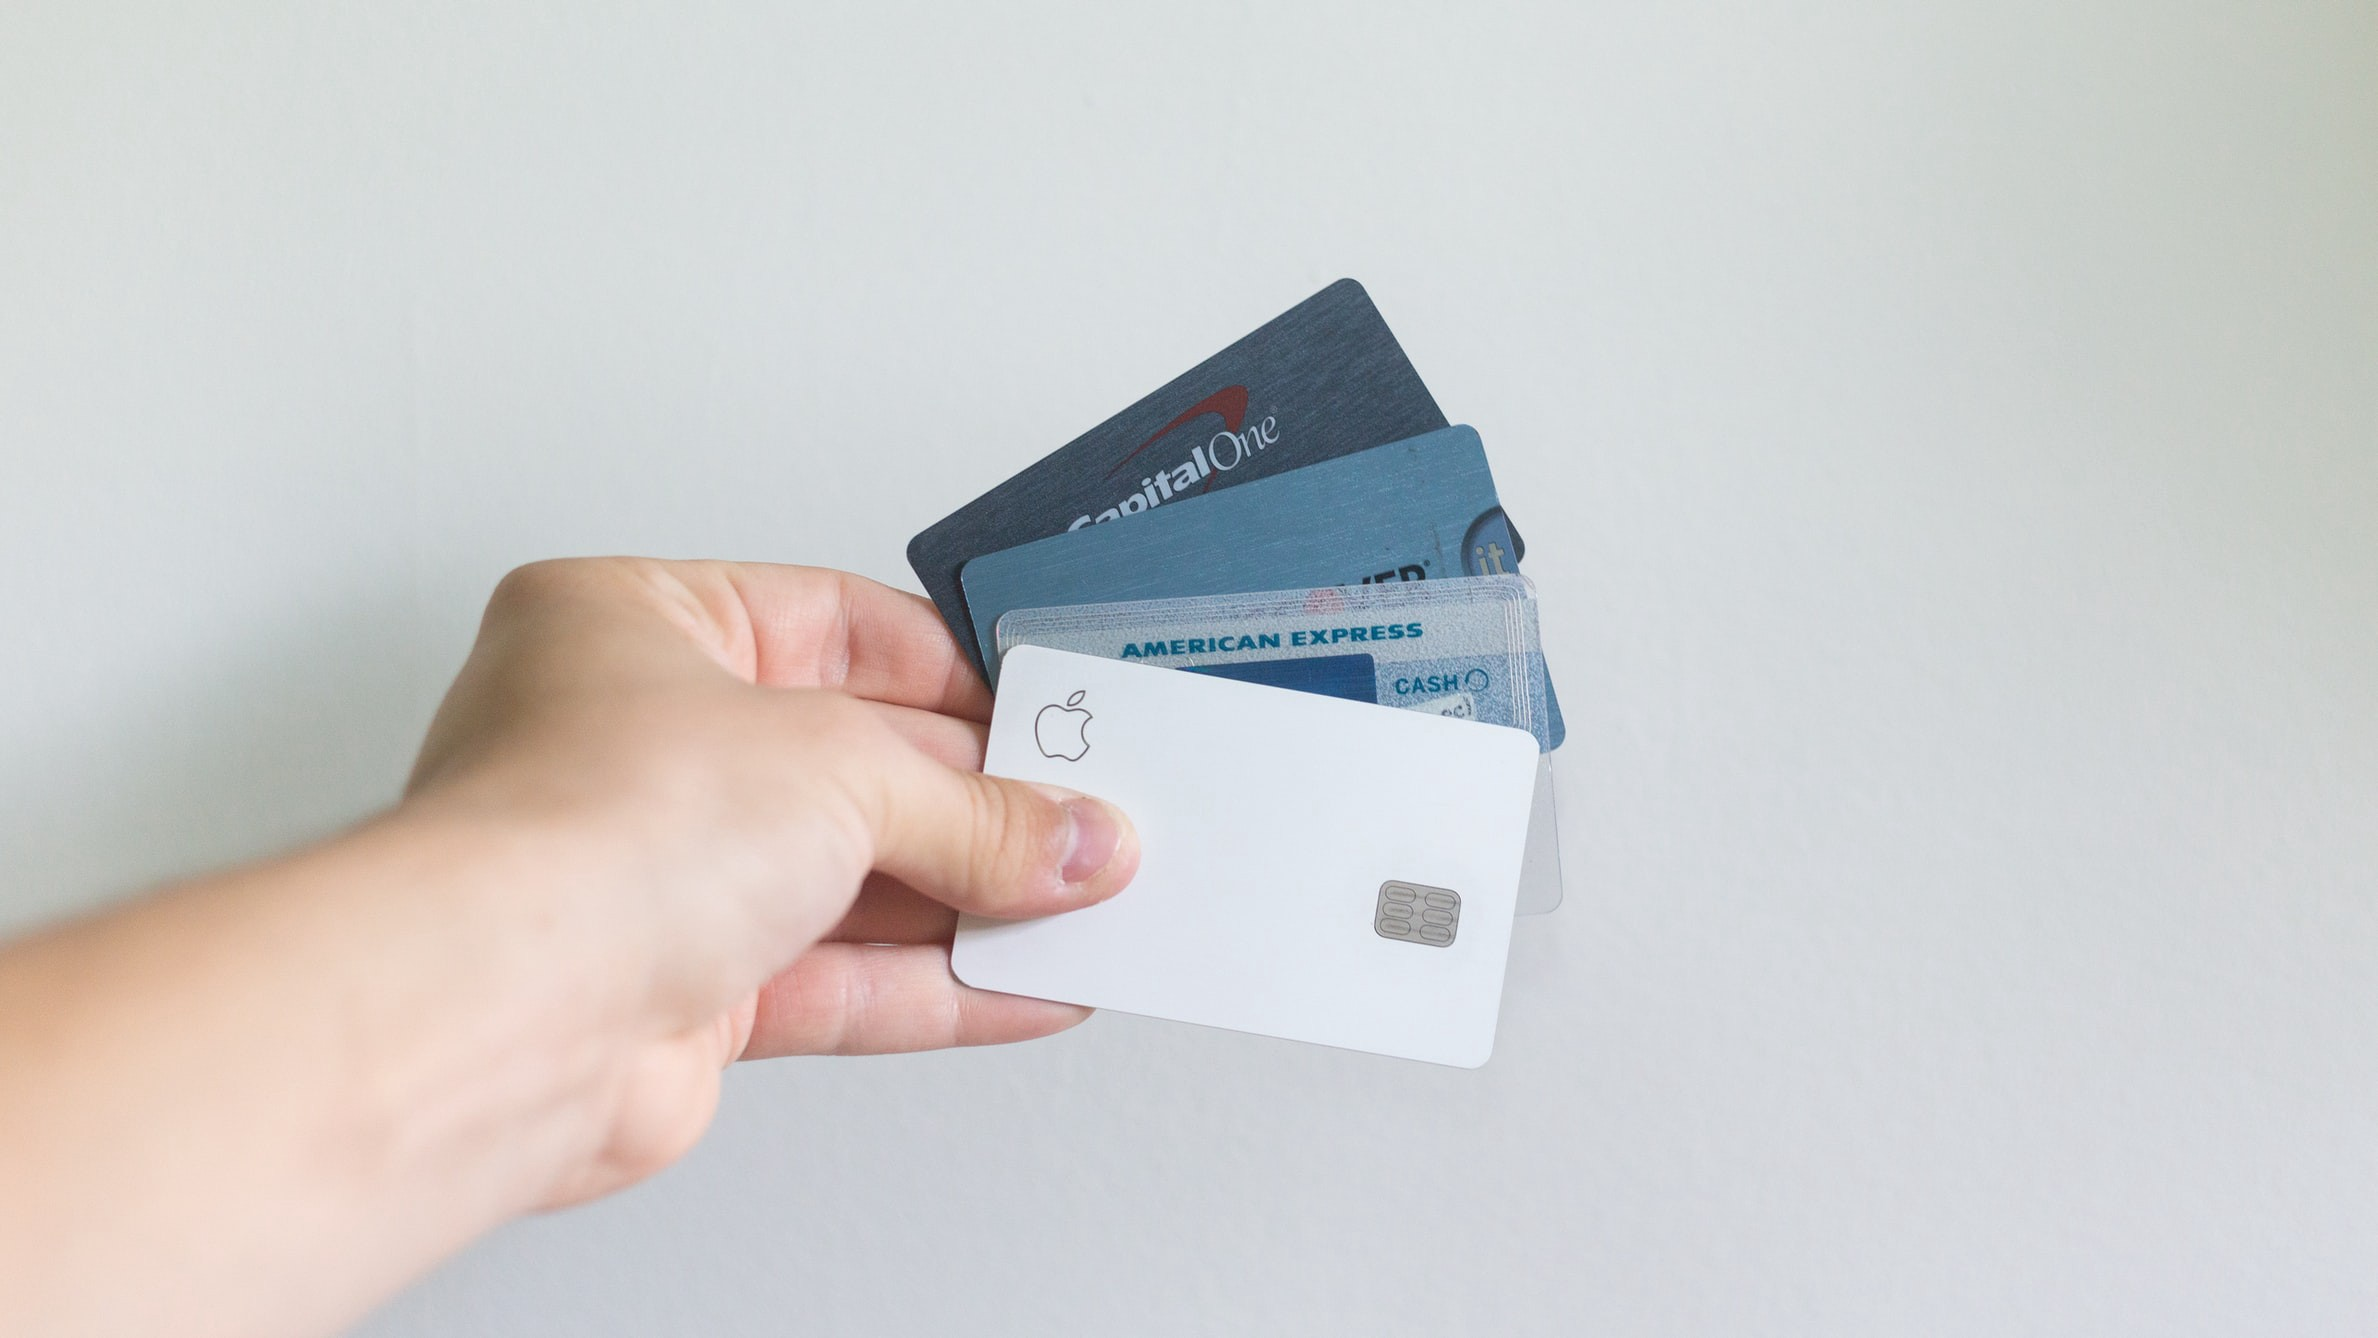 A hand fanning out credit cards.